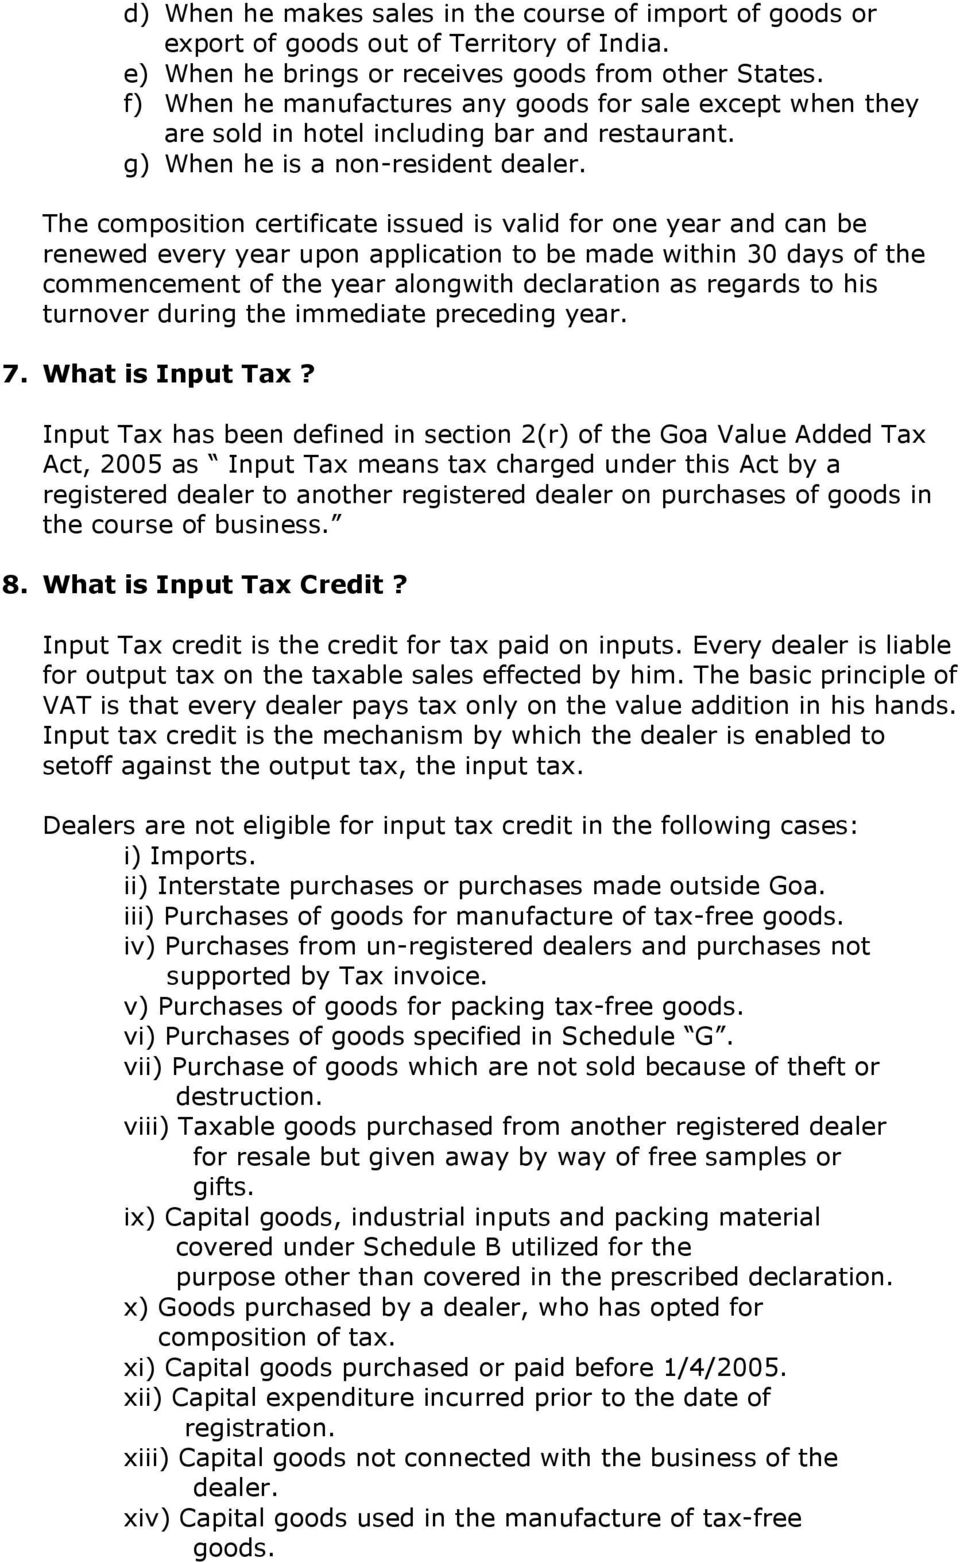 meaning of value added tax in india